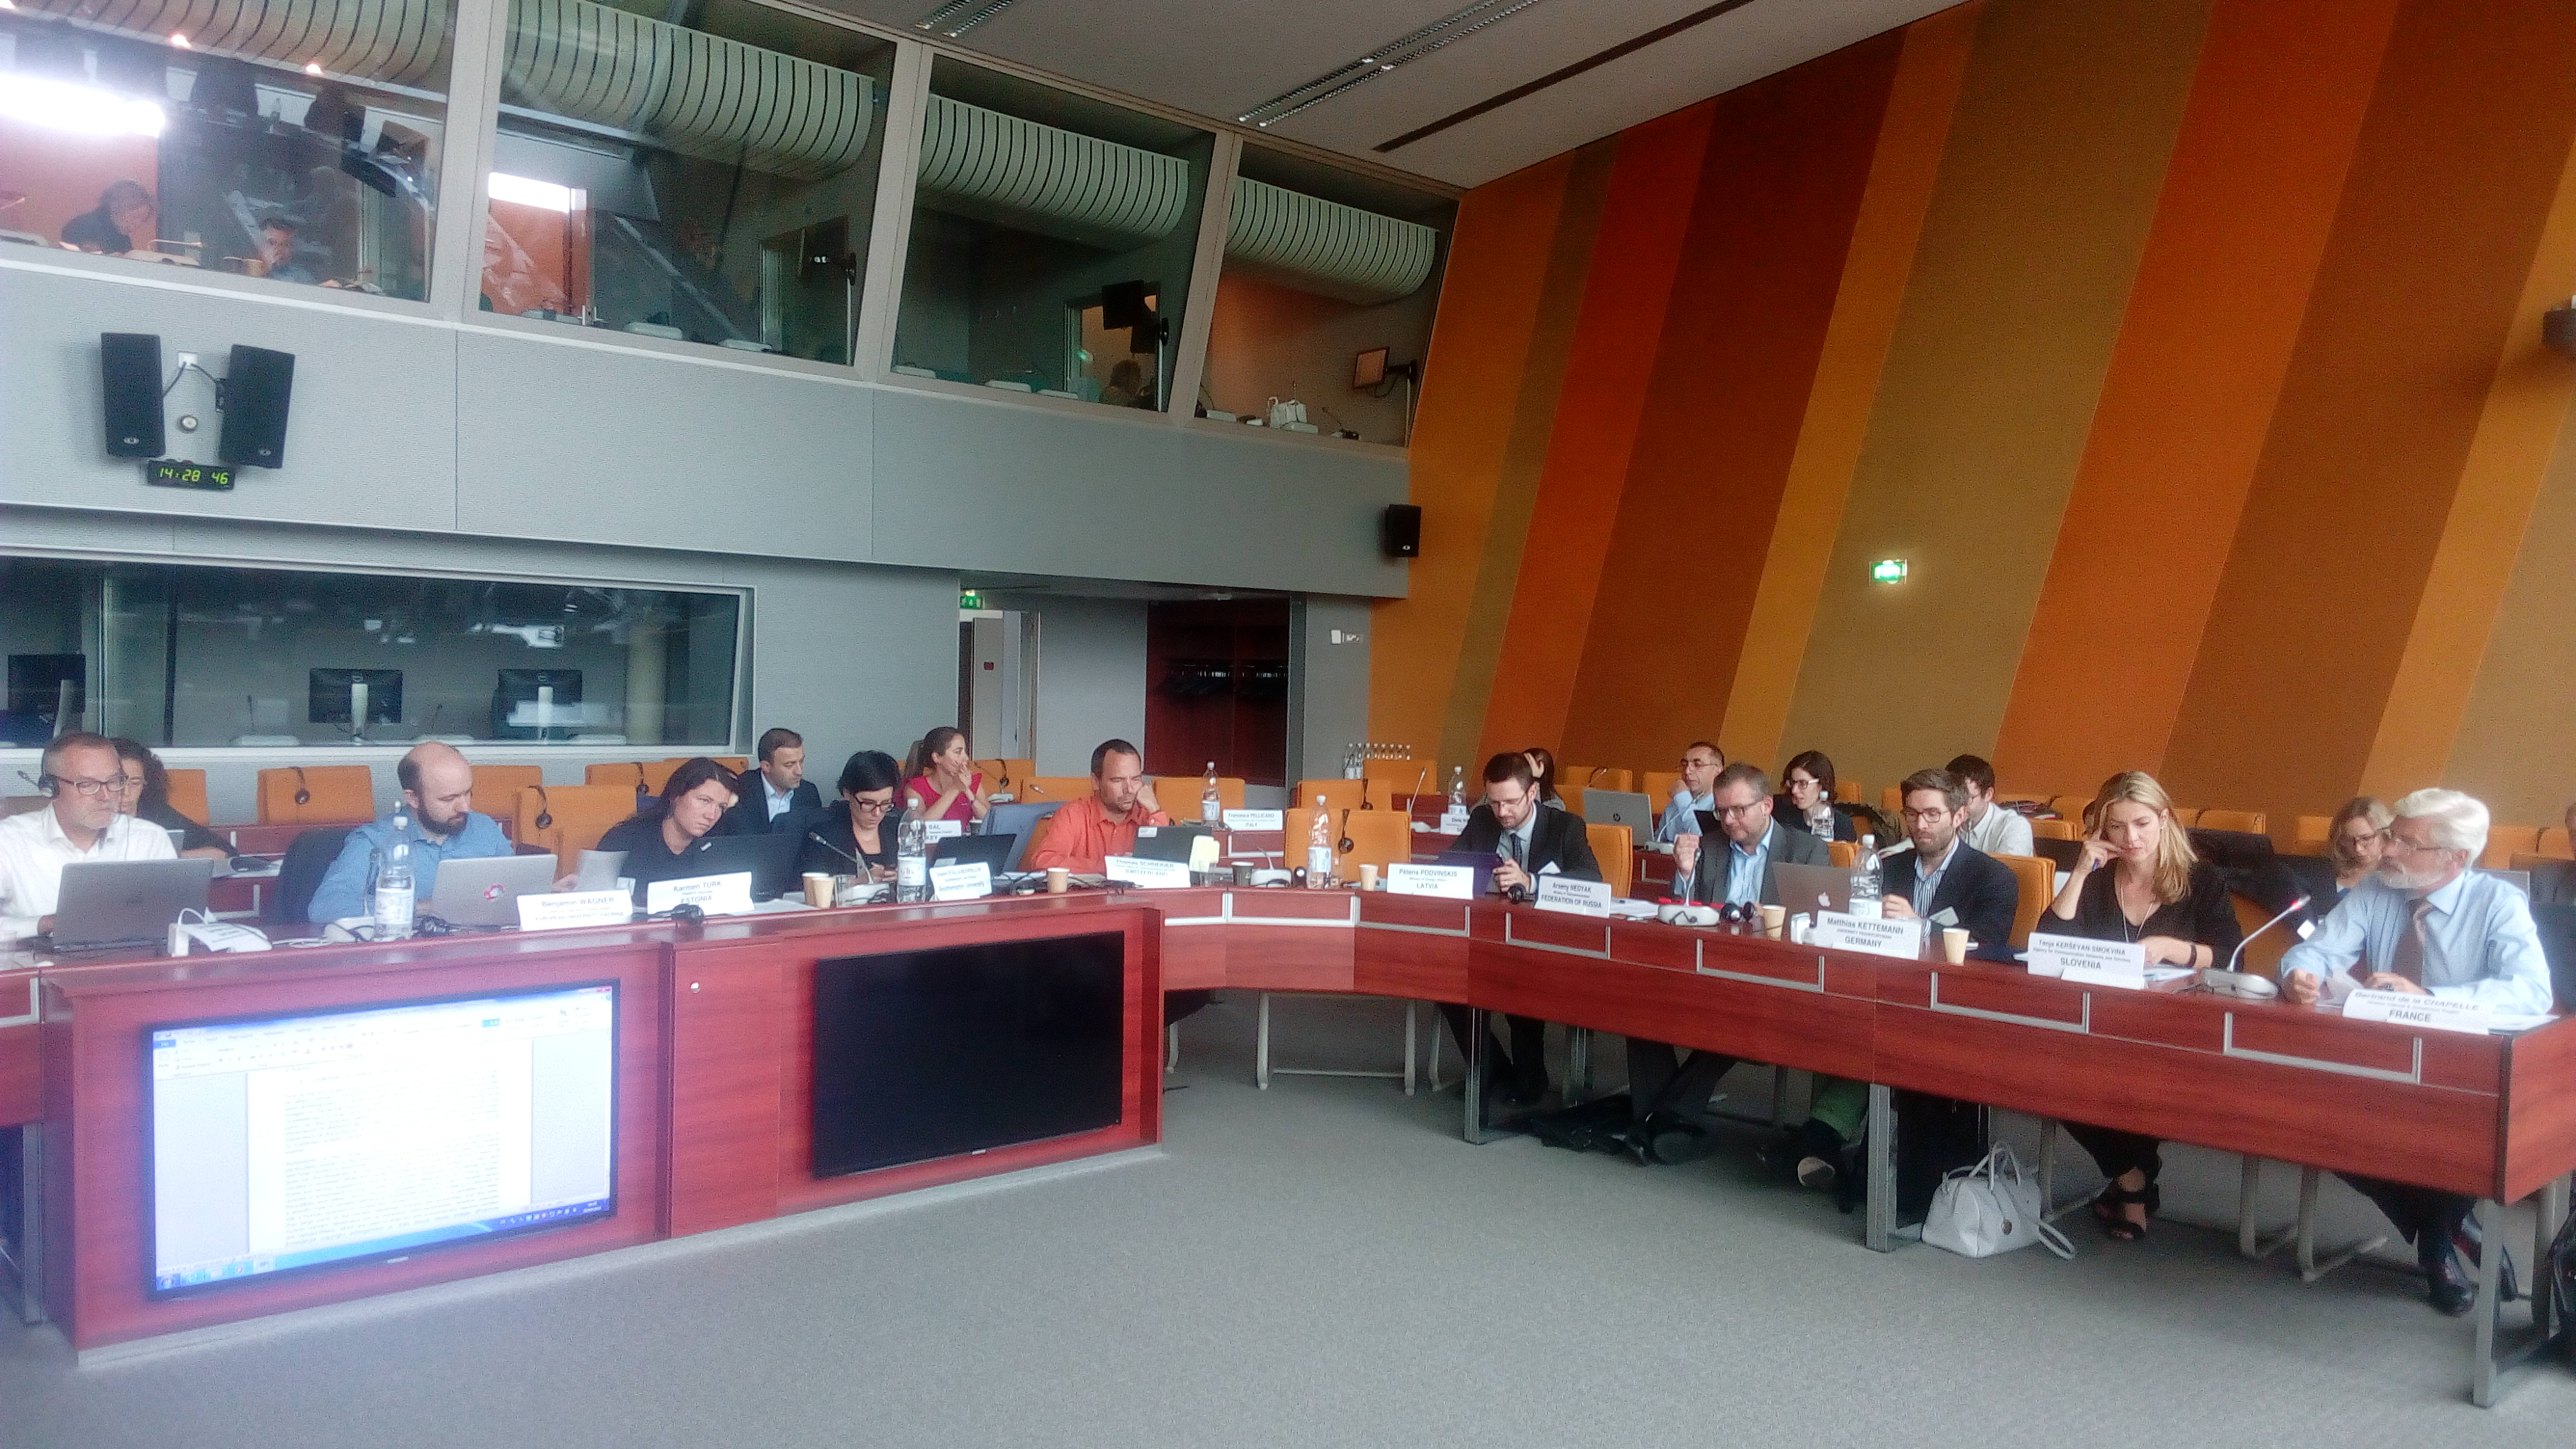 Second meeting of the MSI-NET